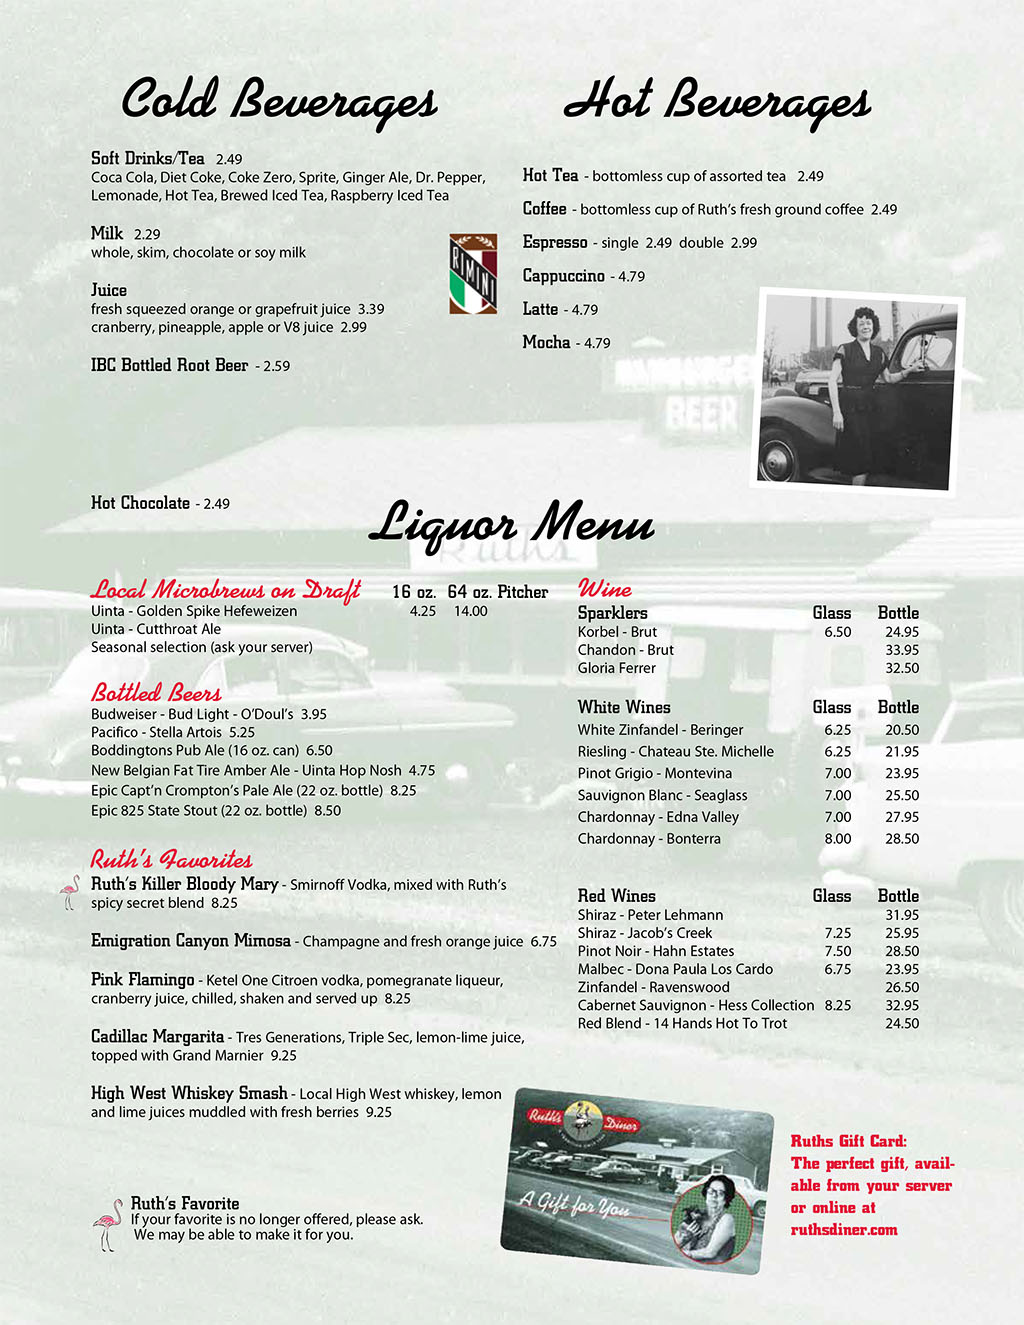 Ruths Diner menu - beverages